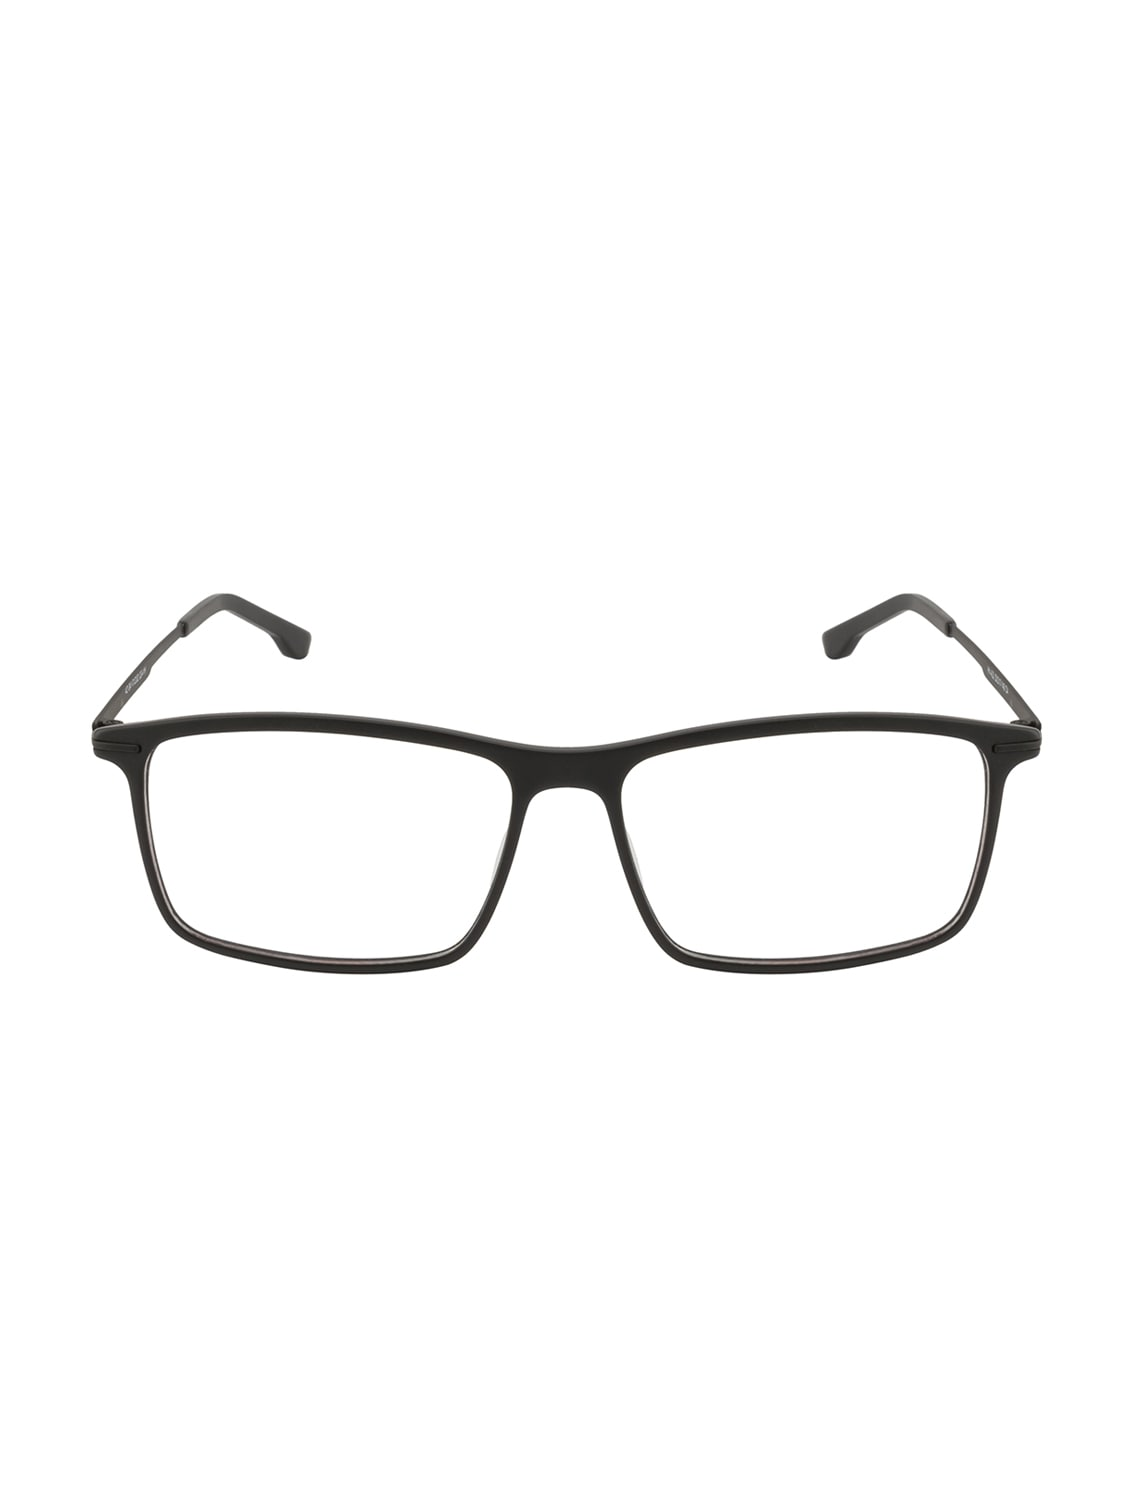 Buy Ted Smith Wayfarer Frames by Ted Smith - Online shopping for Men ...